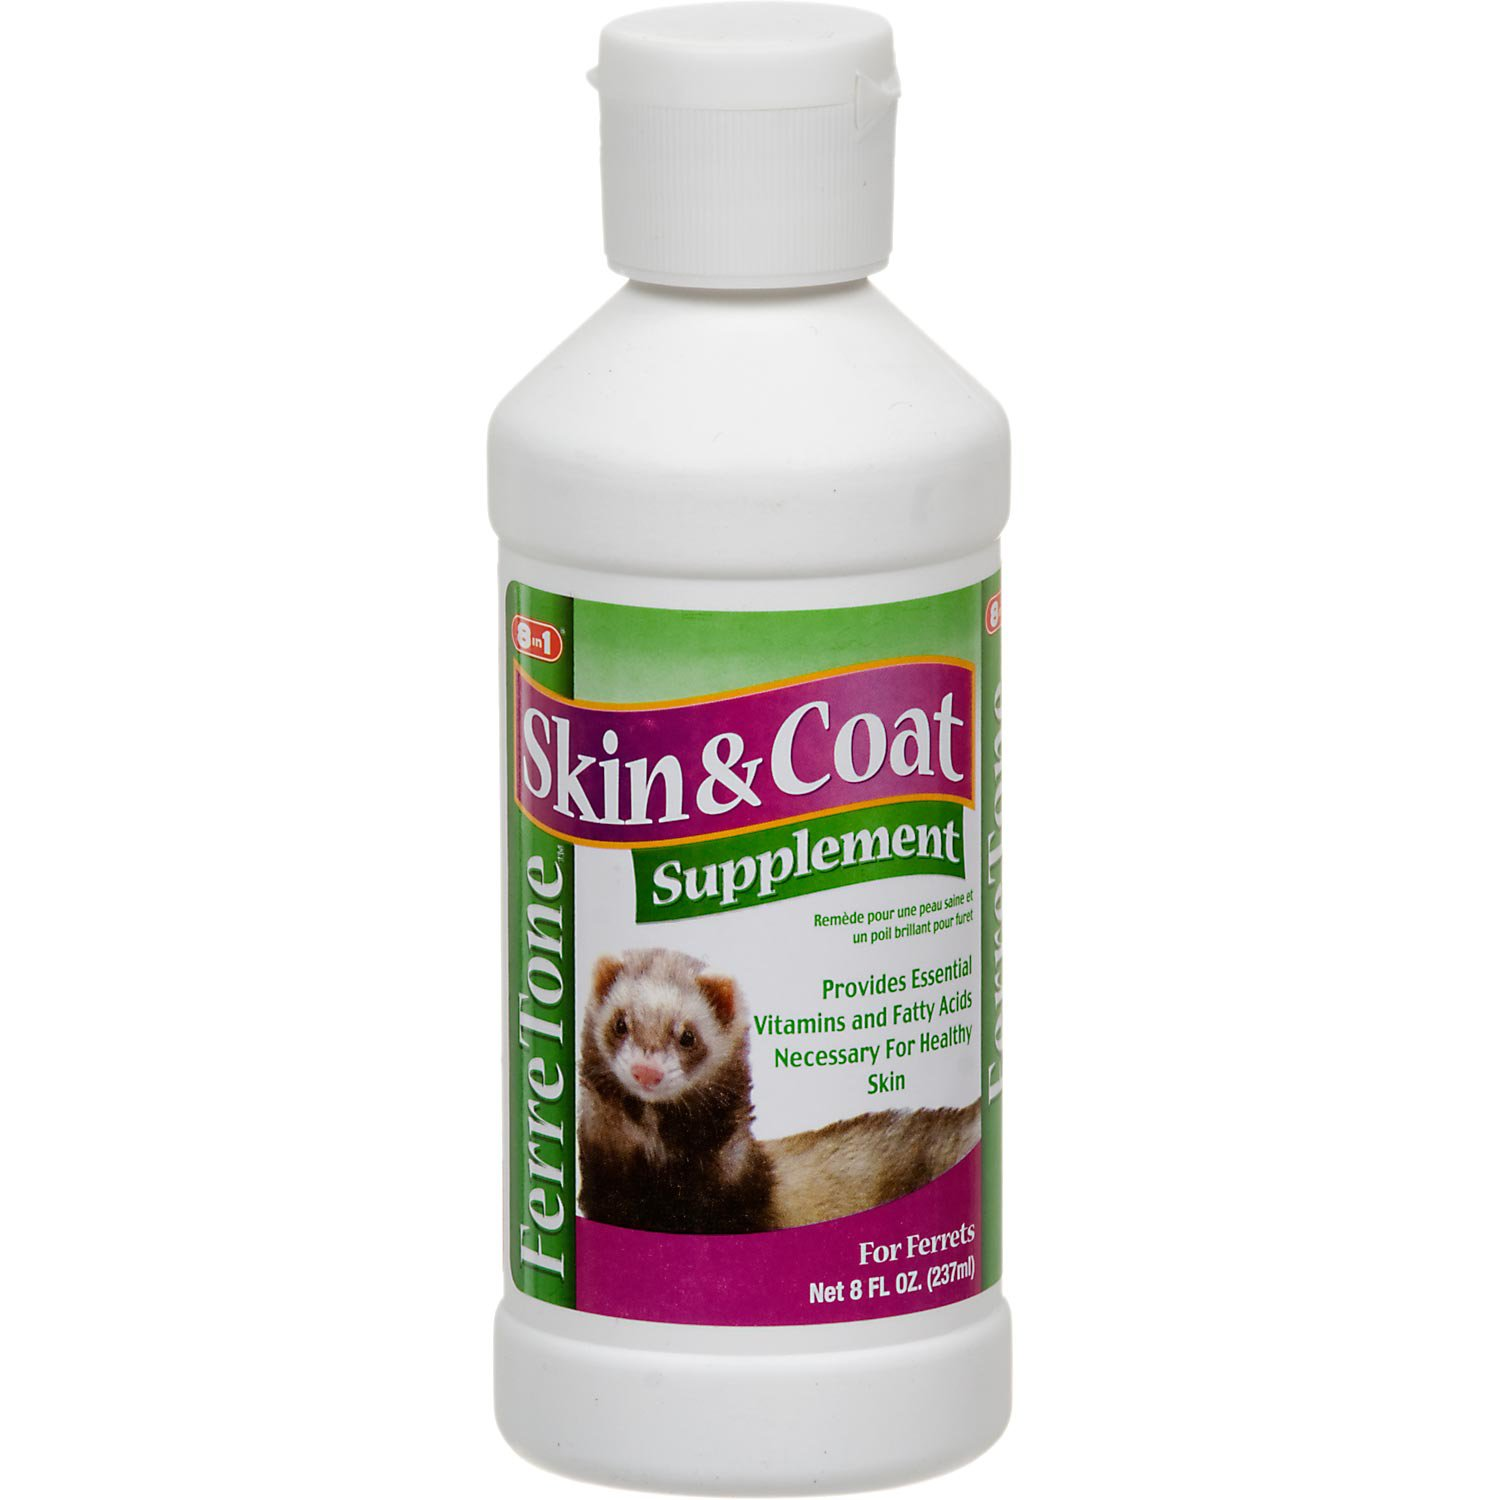 8 in 1 FerreTone Skin & Coat Ferret Food Supplement